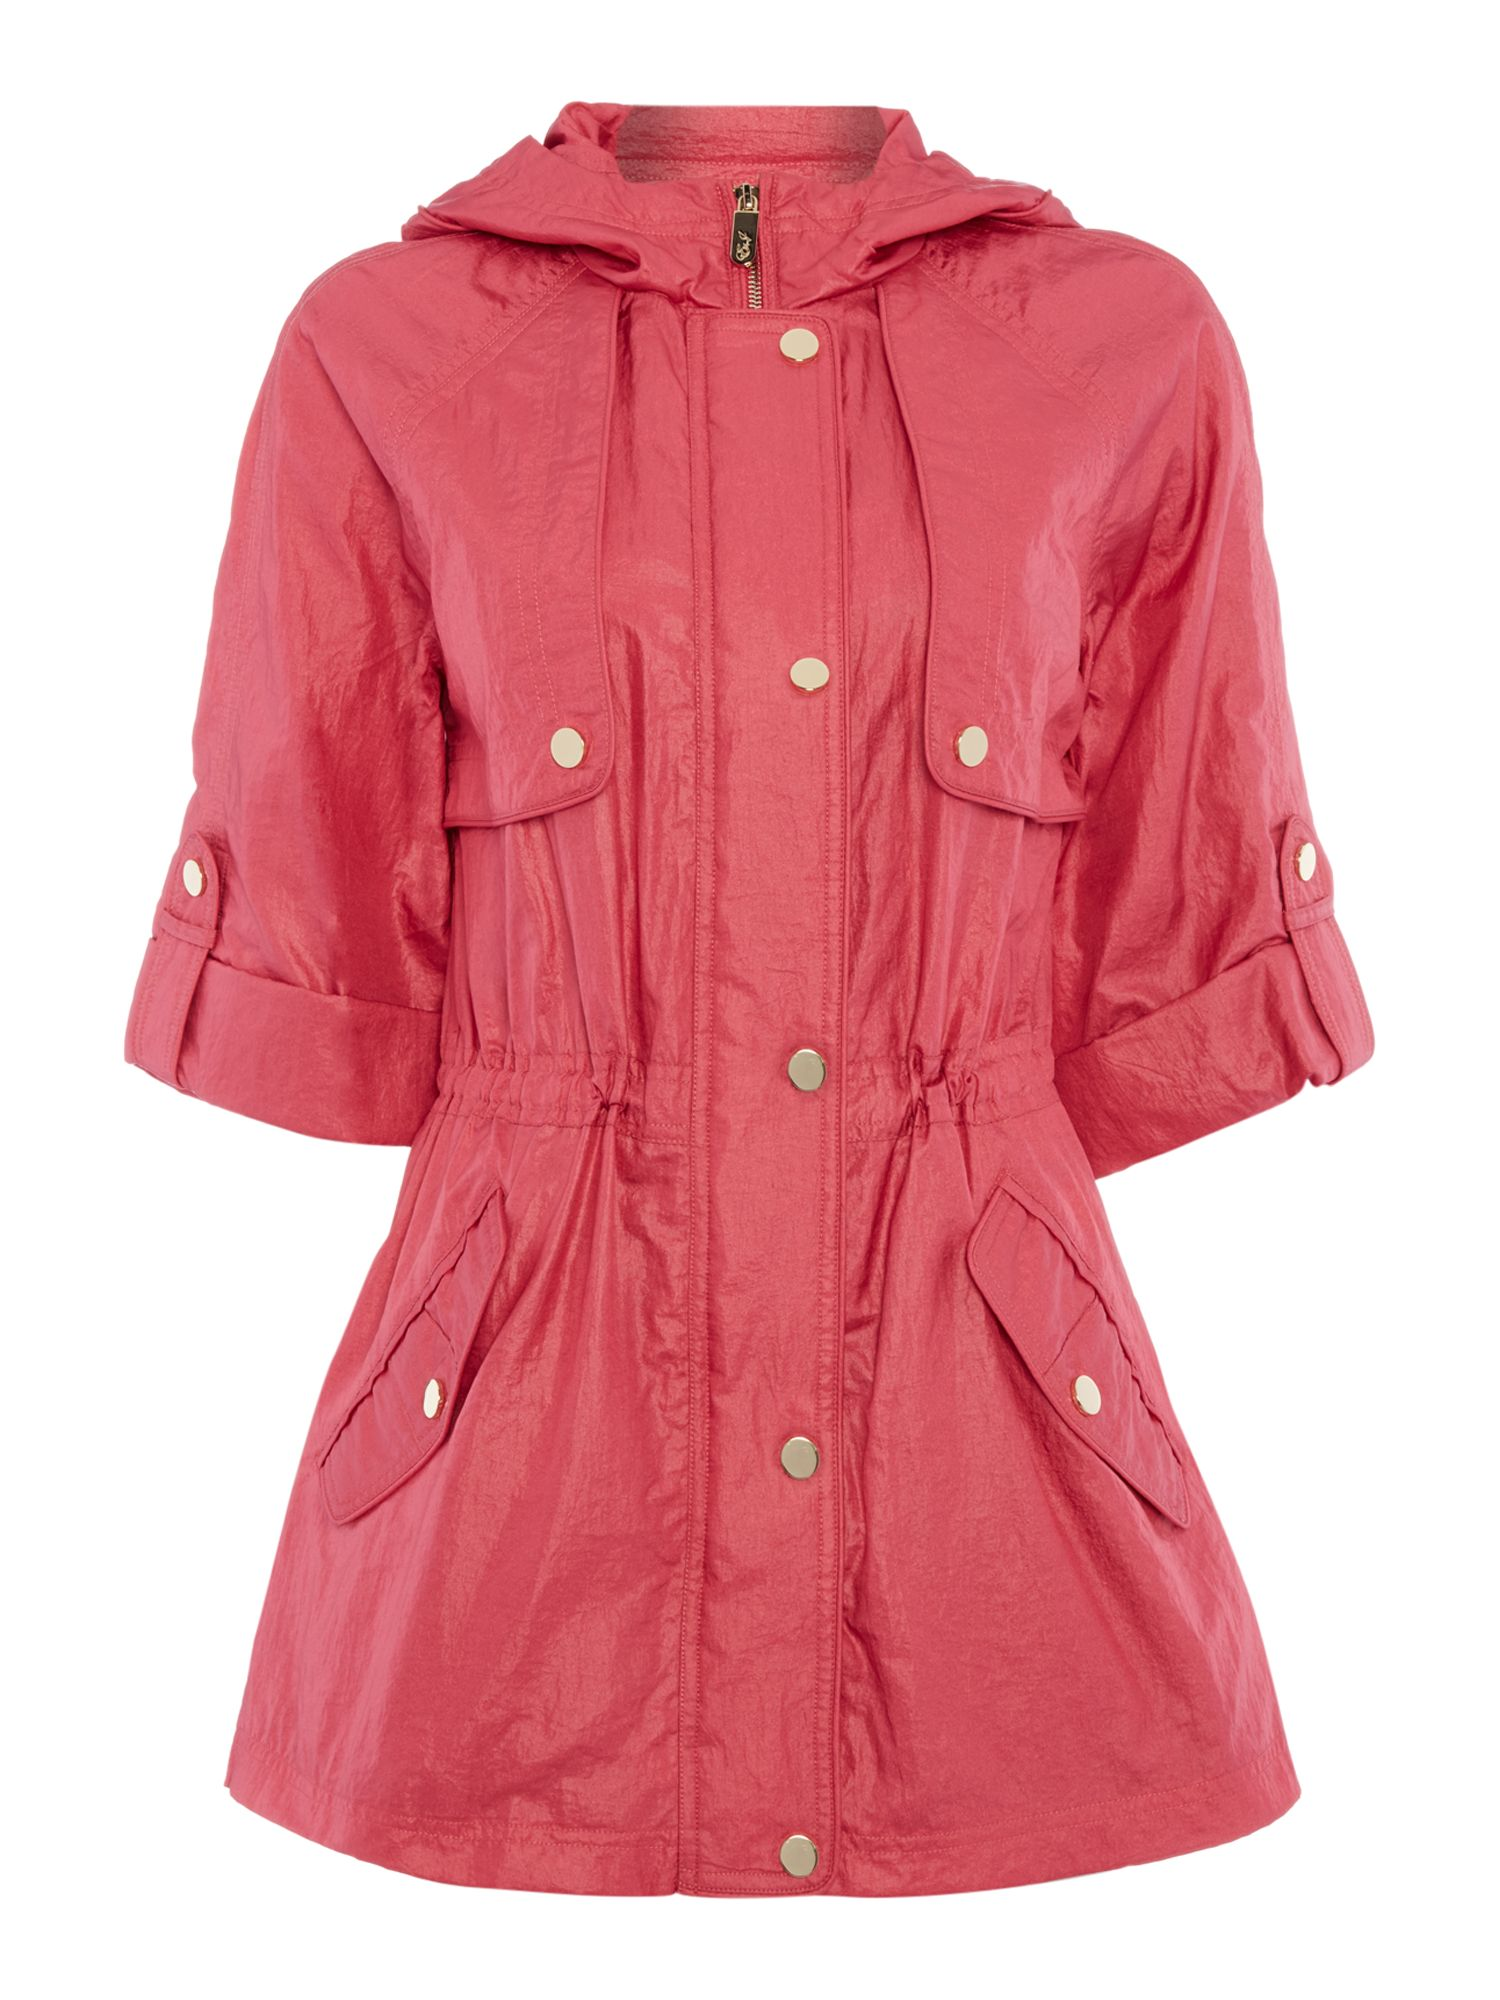 Eliza J Hooded parka coat with 34 sleeves Pink